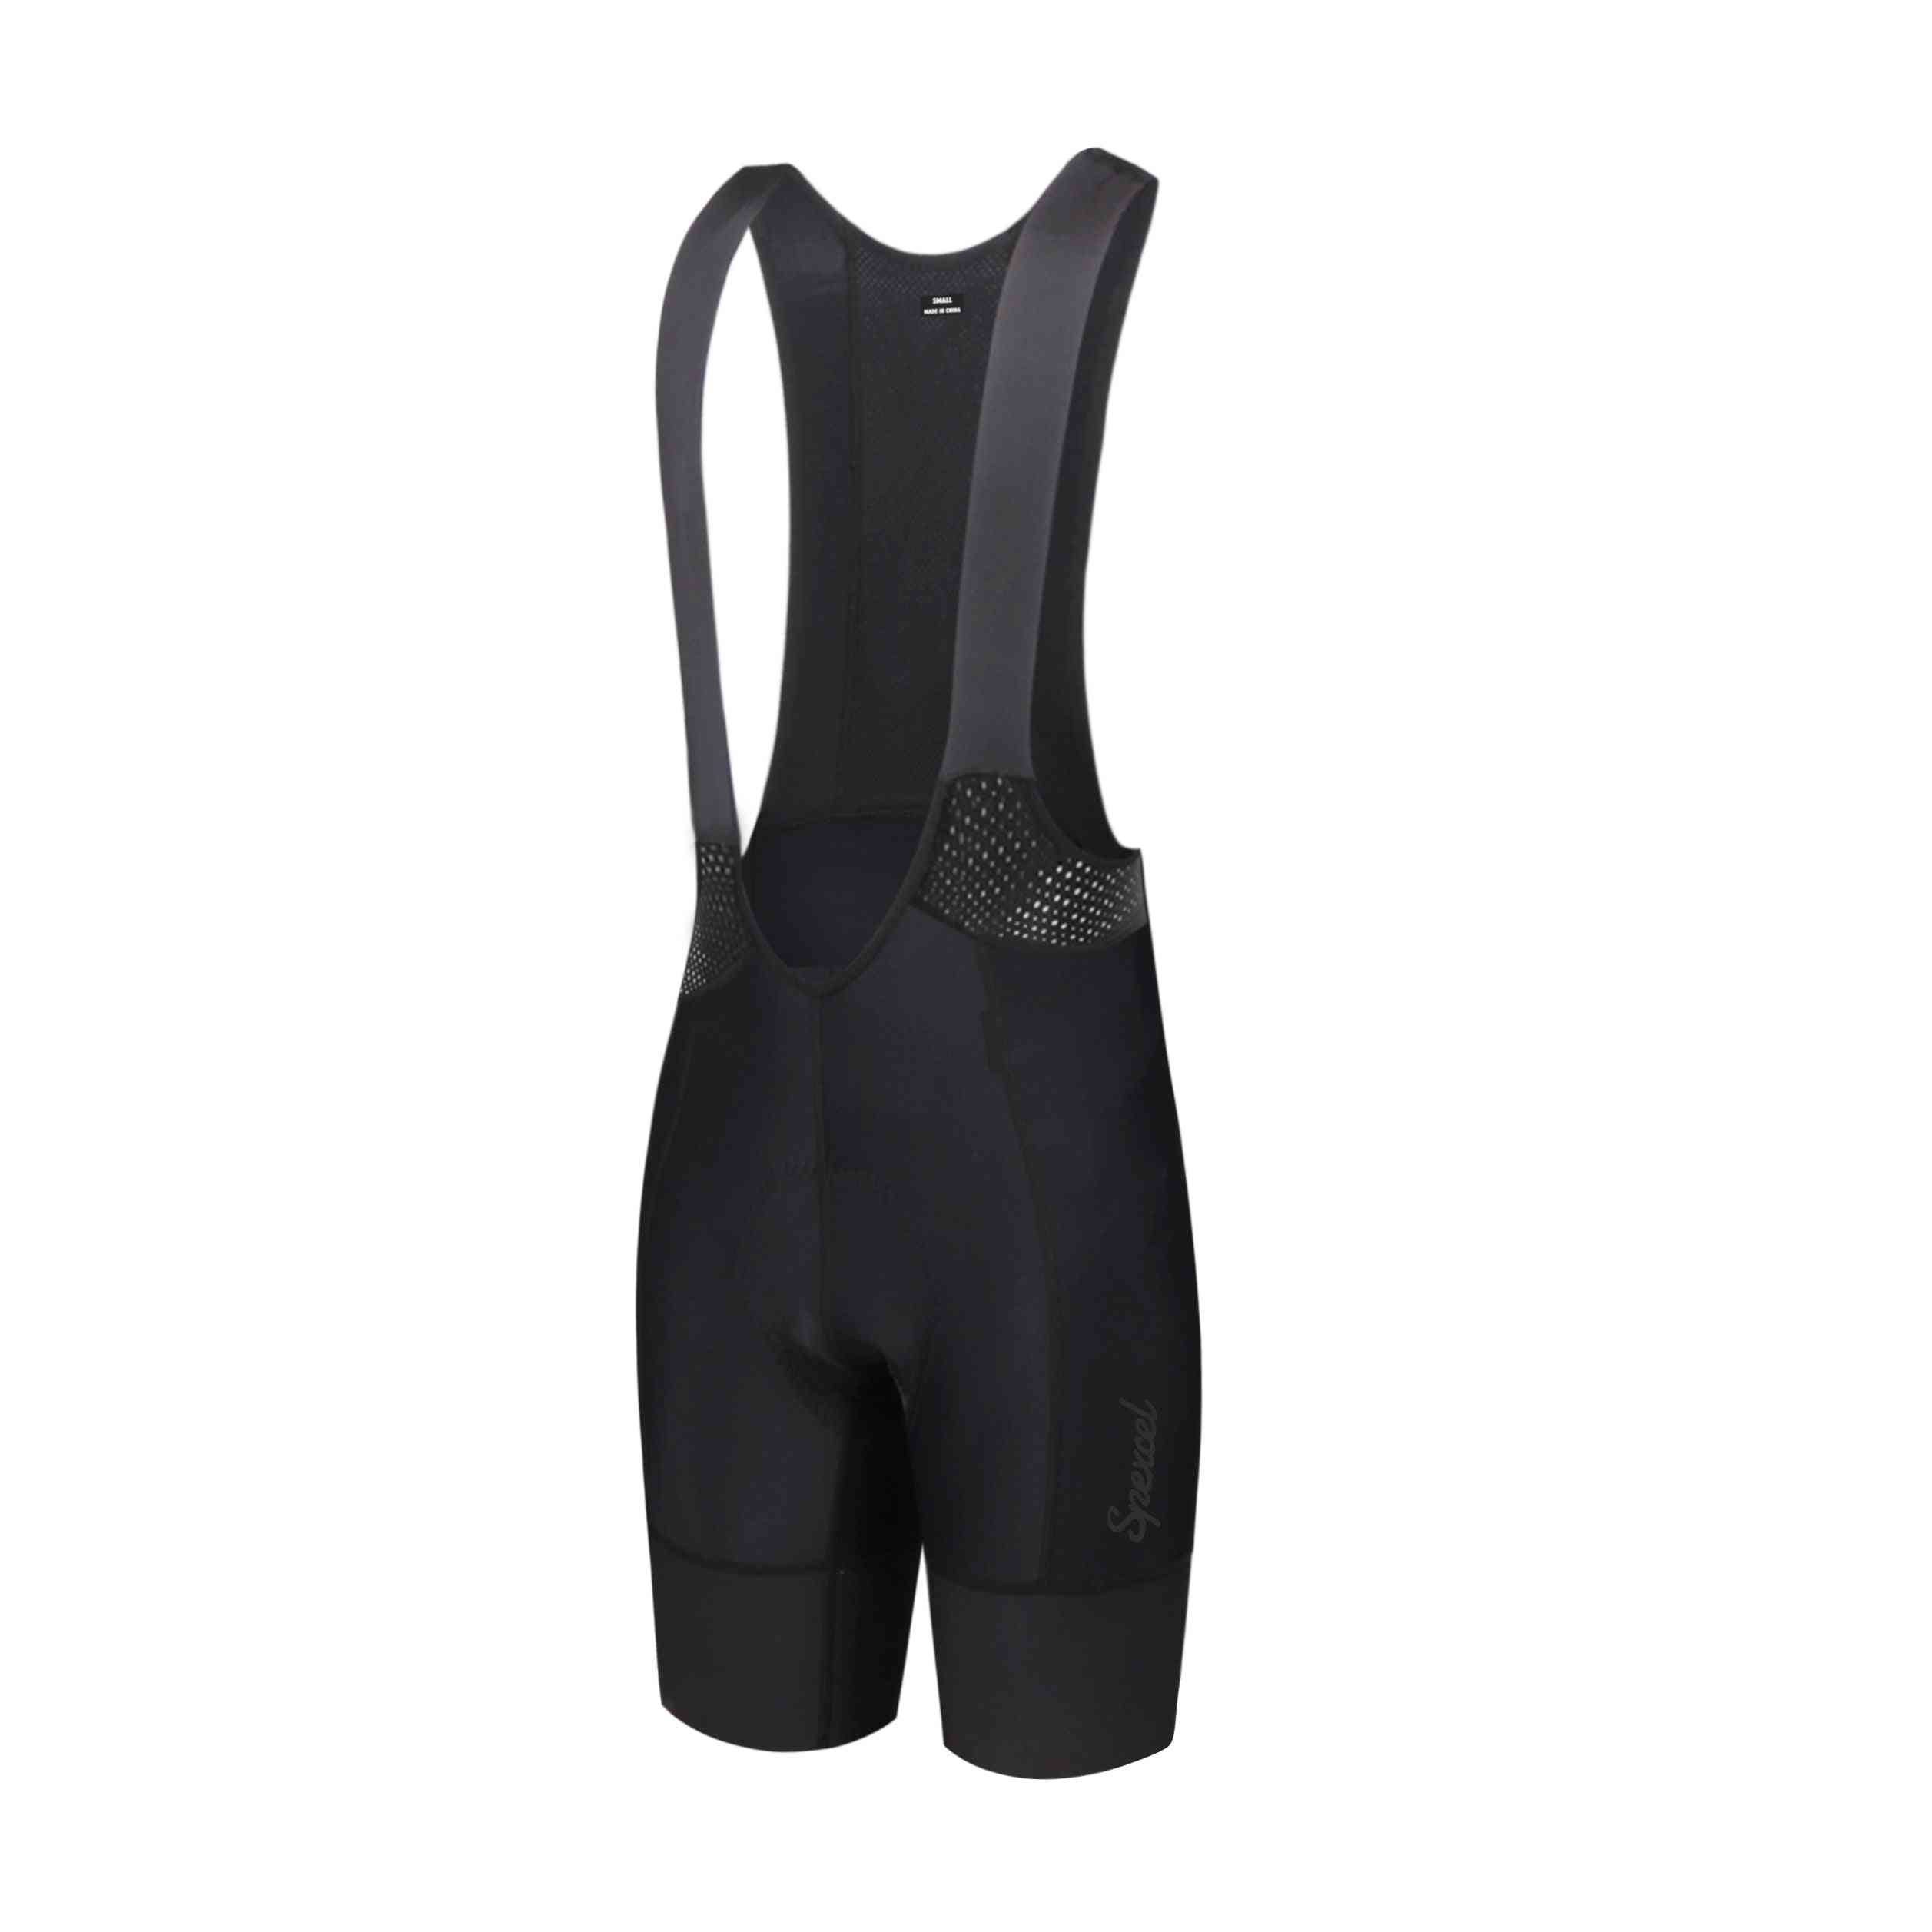 Bib Shorts Race Fit Cycling Bottom With Italy High Density Pad.